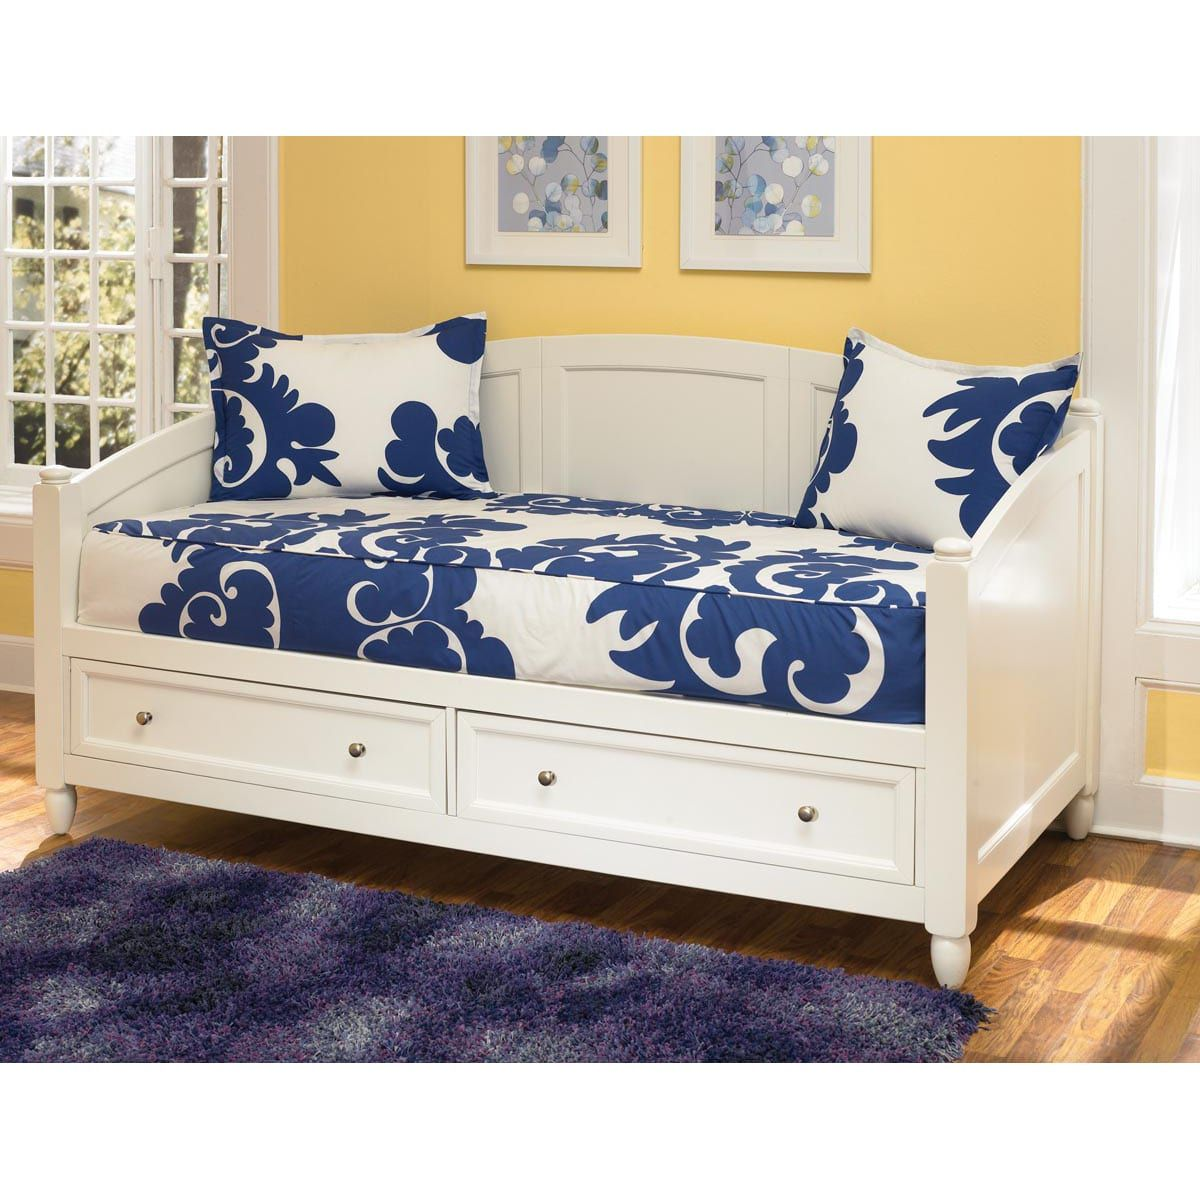 Beds With Storage Perth Havenside Home Winthrop Cream Daybed Naples White Daybed